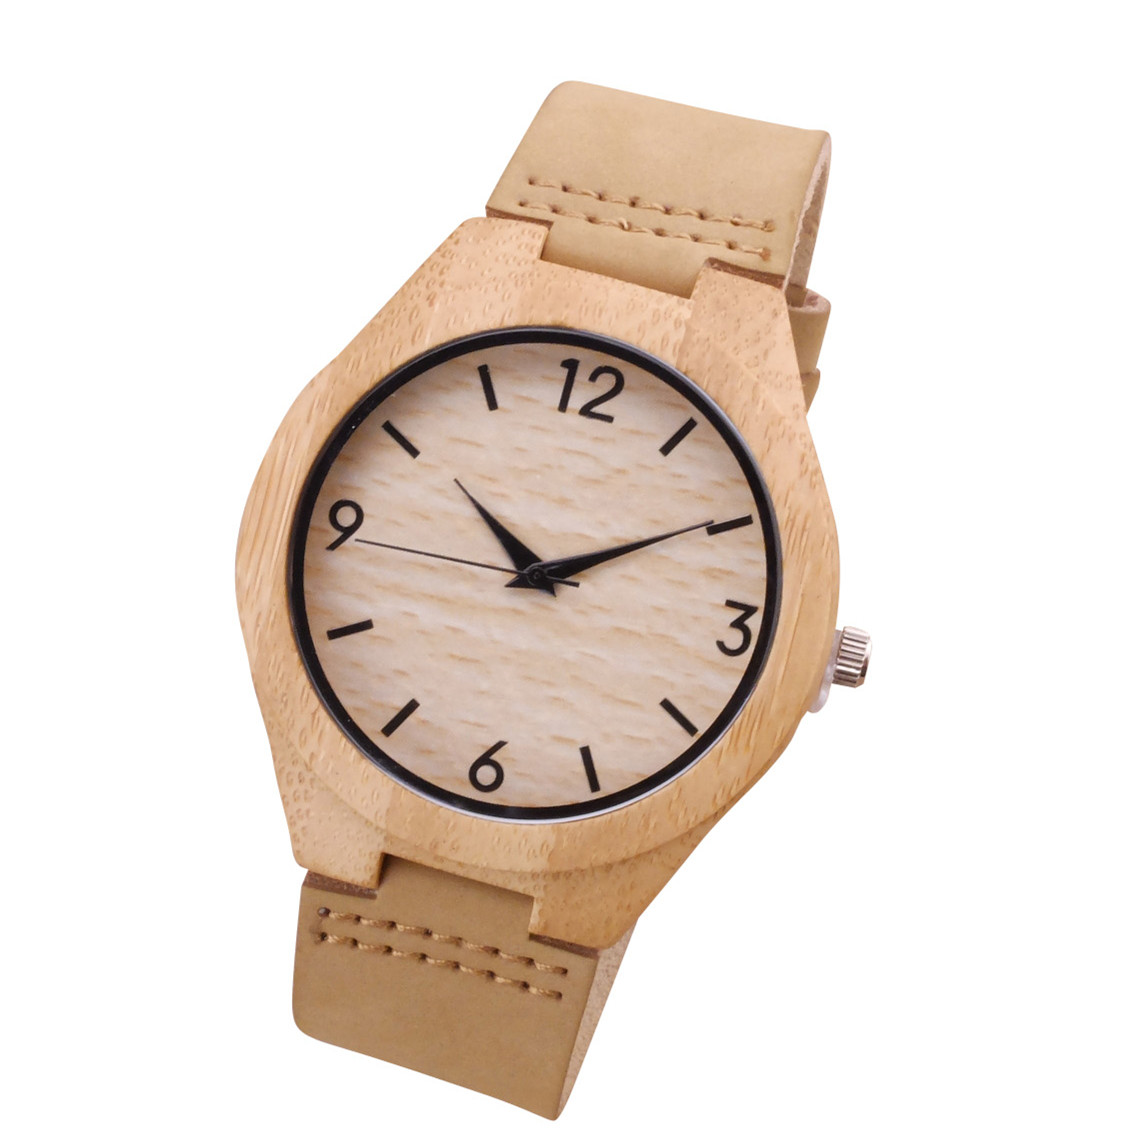 2018 Men women wood watch simple light Bamboo wristwatch handmade natural wood quartz watches festival Memorial Day gift simple casual wooden watch natural bamboo handmade wristwatch genuine leather band strap quartz watch men women gift page 3